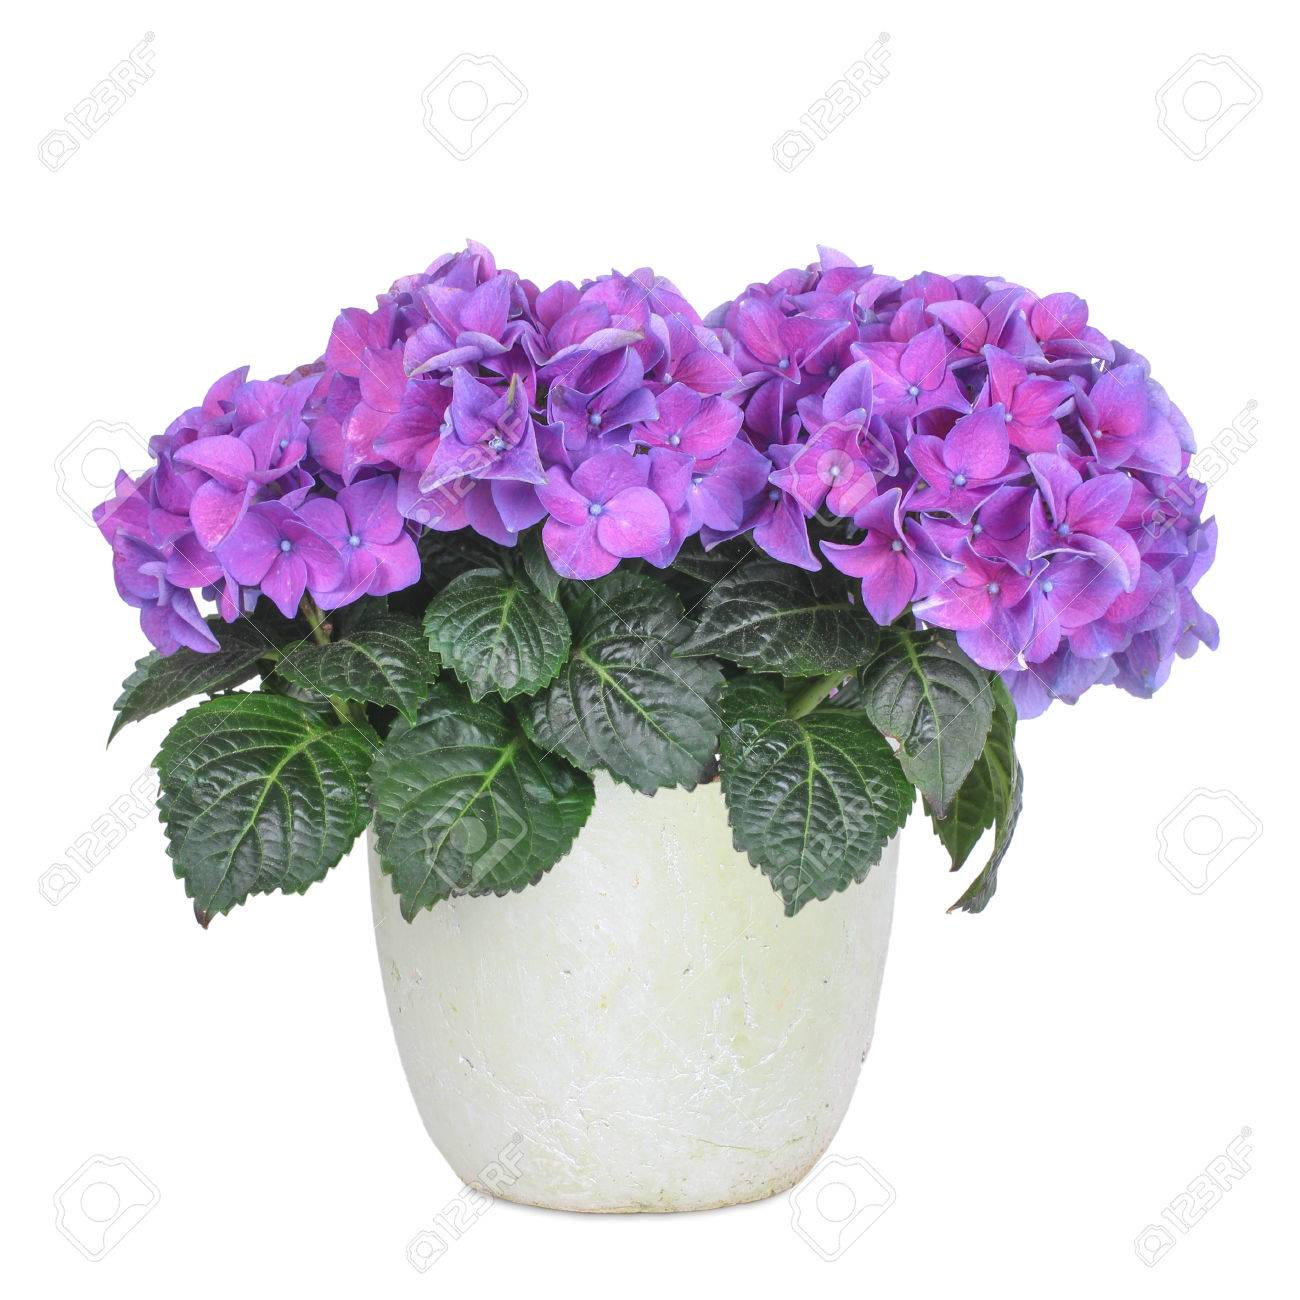 Purple and rose hydrangea, isolated - 32860312